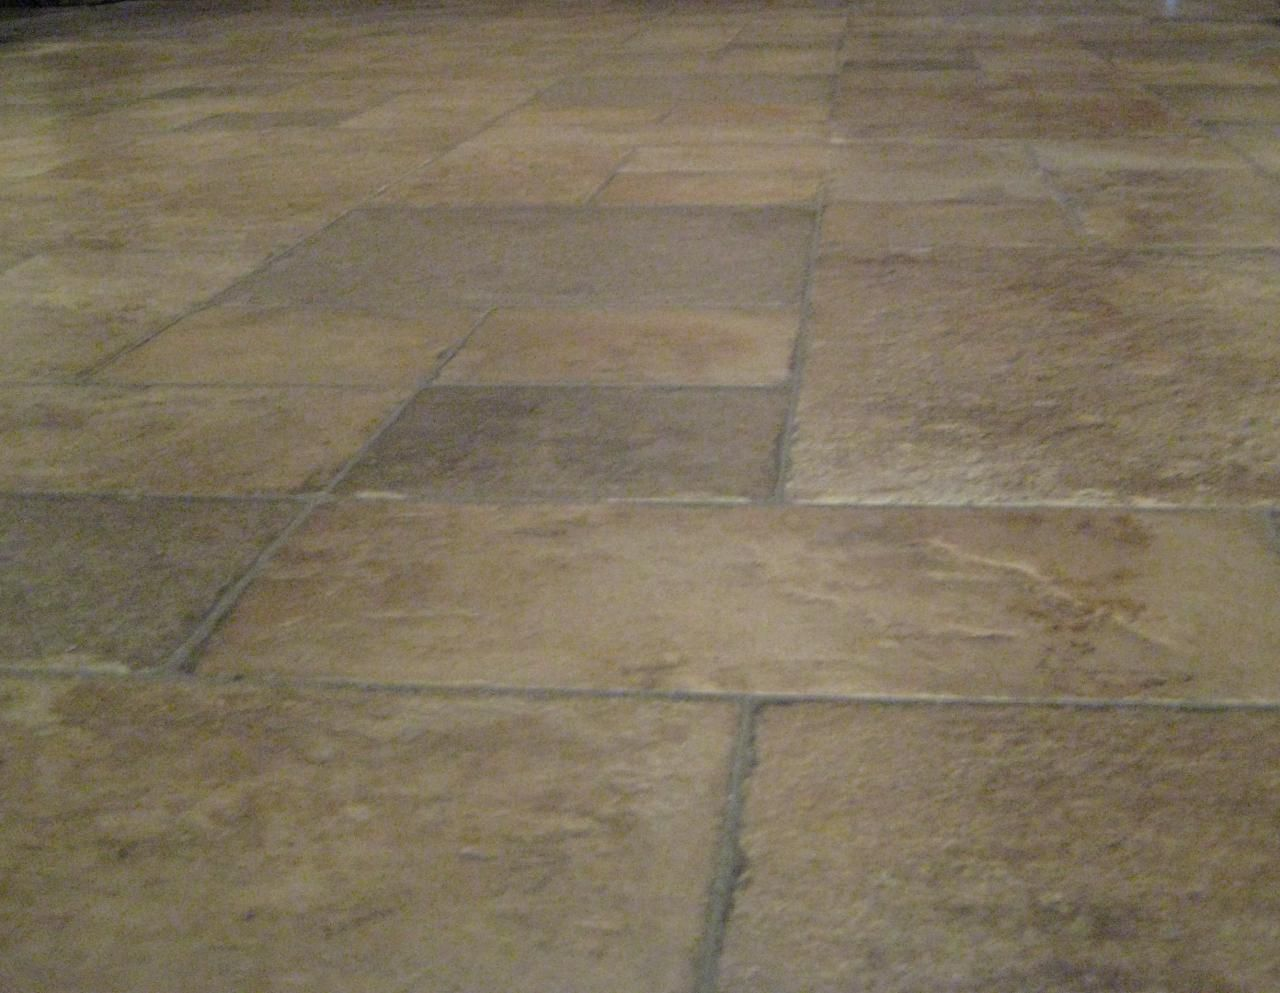 Sandstone Kitchen Floor Tiles Indoor Stone Flooring Tile Floor Tile Patterns And Designs